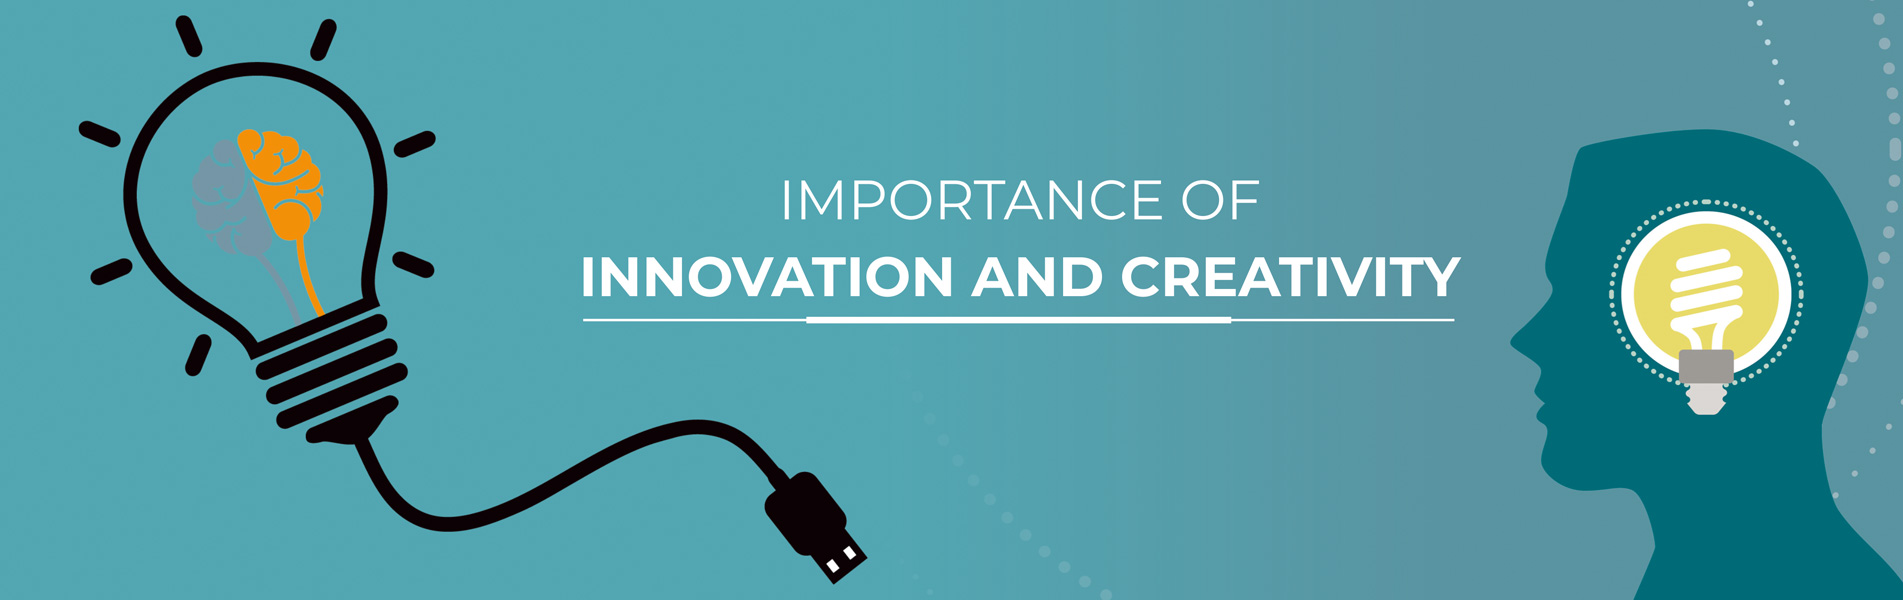 Importance-of-Innovation-and-Creativity